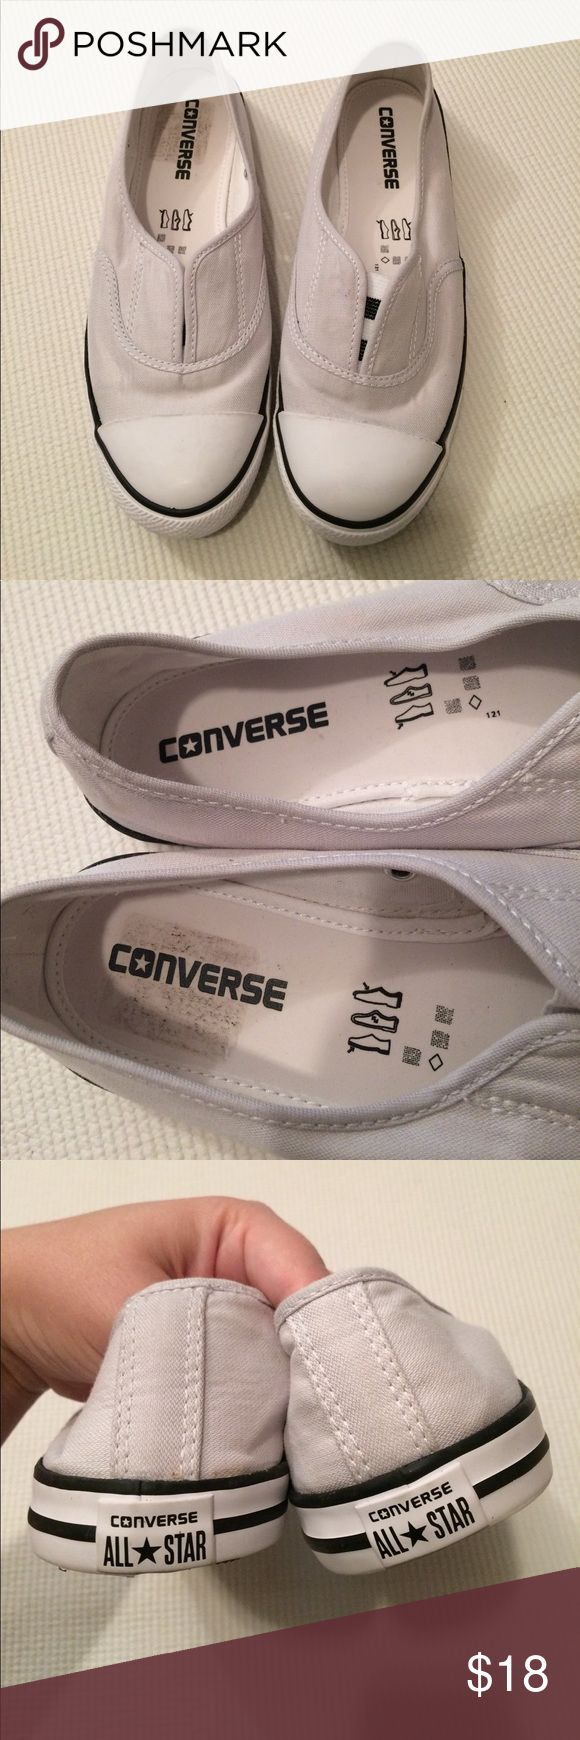 """$15 nwot converse slip on shoes Nwot. ✔The price in the beginning of the title of my listings is the bundle price. These prices are valid through the """"make an offer"""" feature after you create a bundle. These bundle orders must be over $15. Ask me about more details if interested.  ❌No trades ❌No holds Converse Shoes Sneakers"""